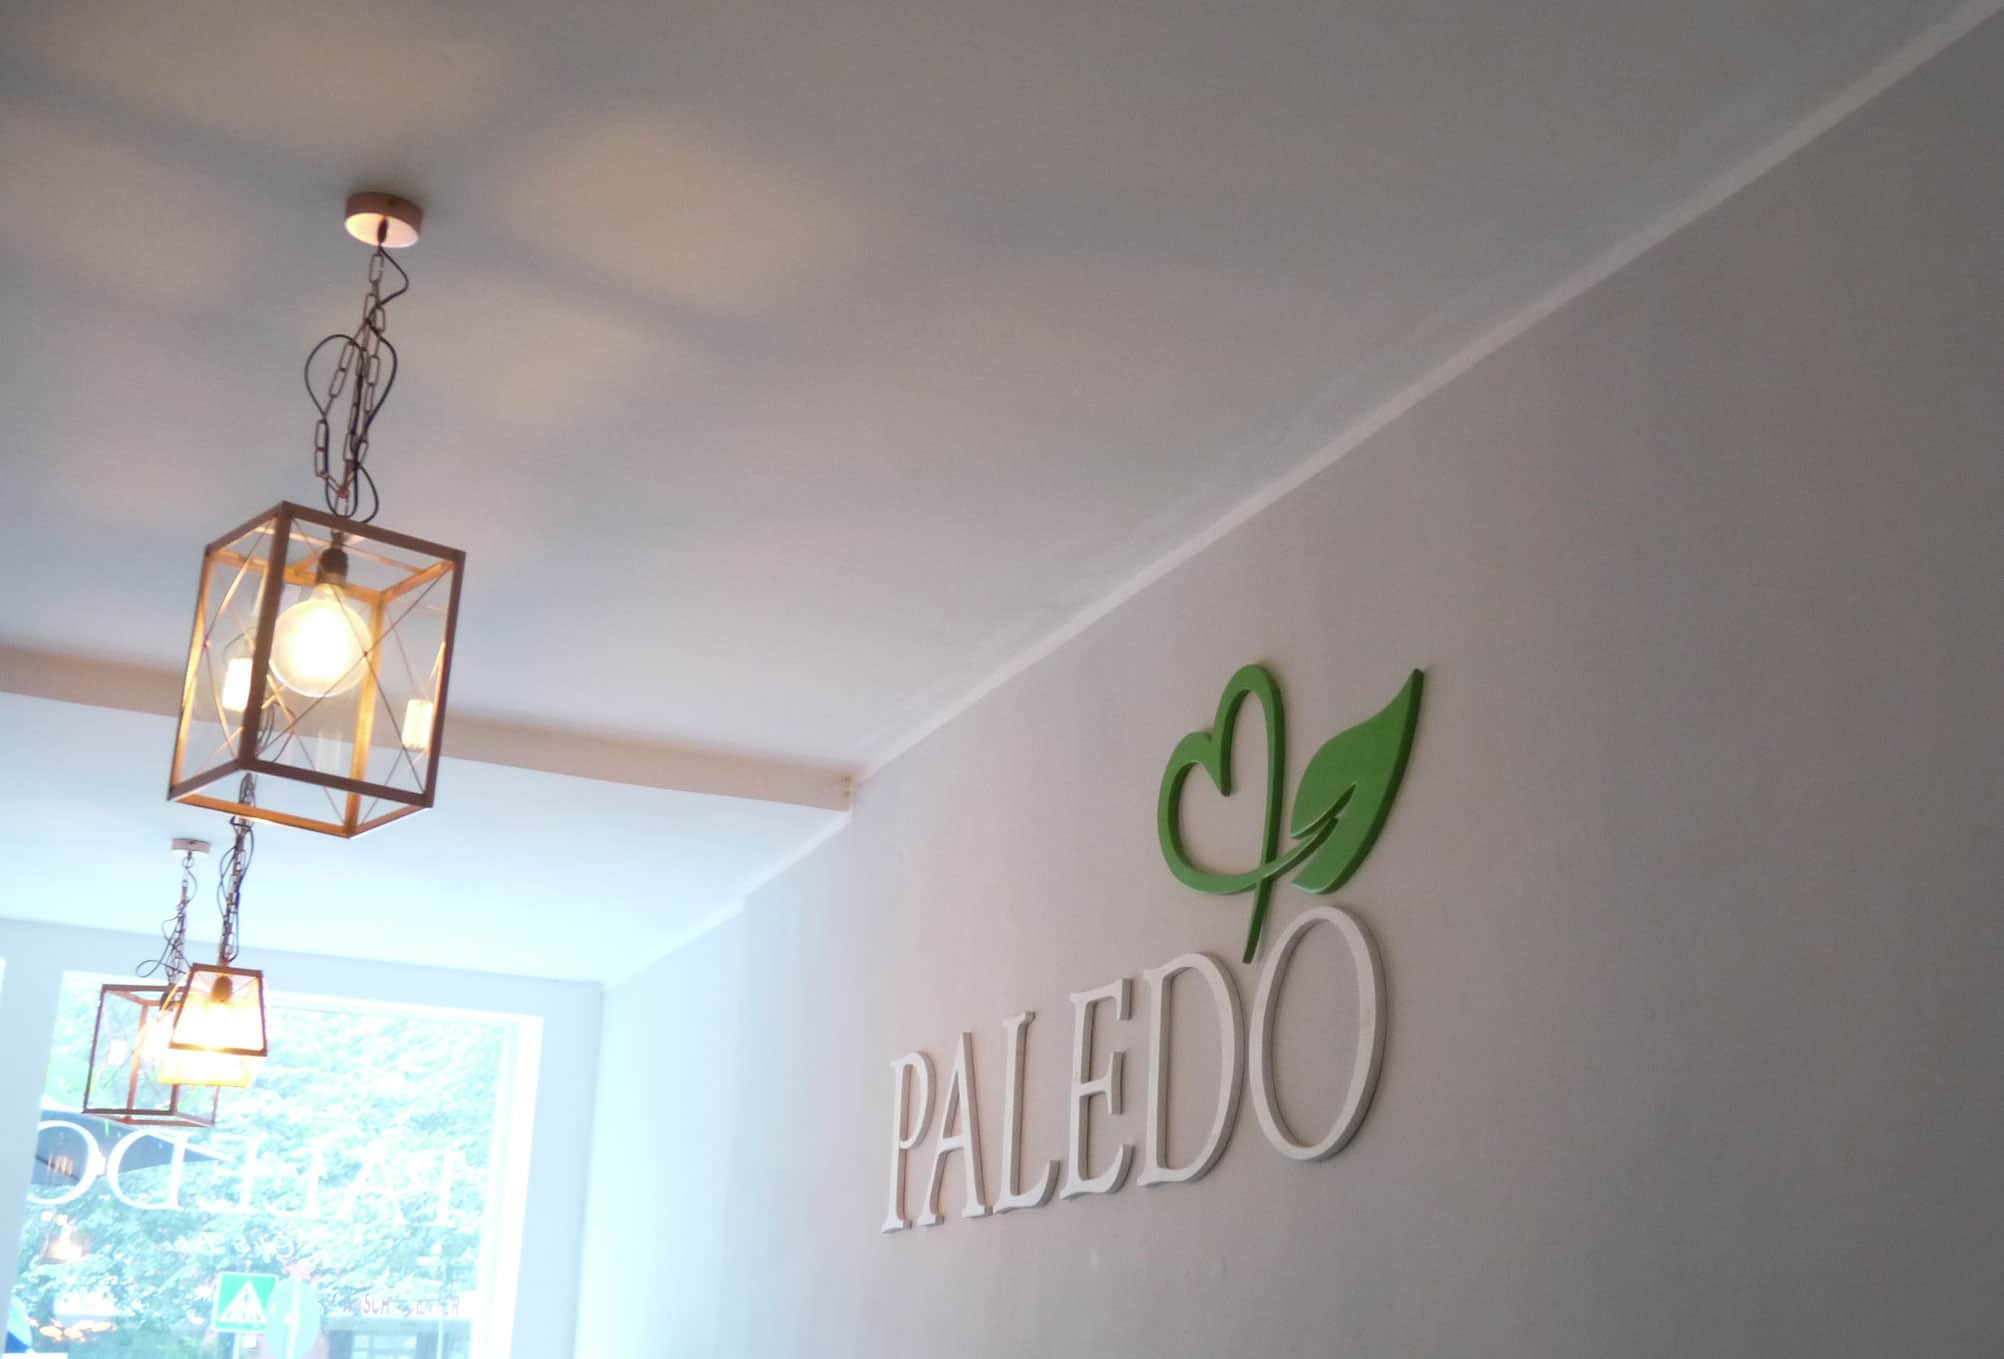 Restaurant Paledo in Hamburg